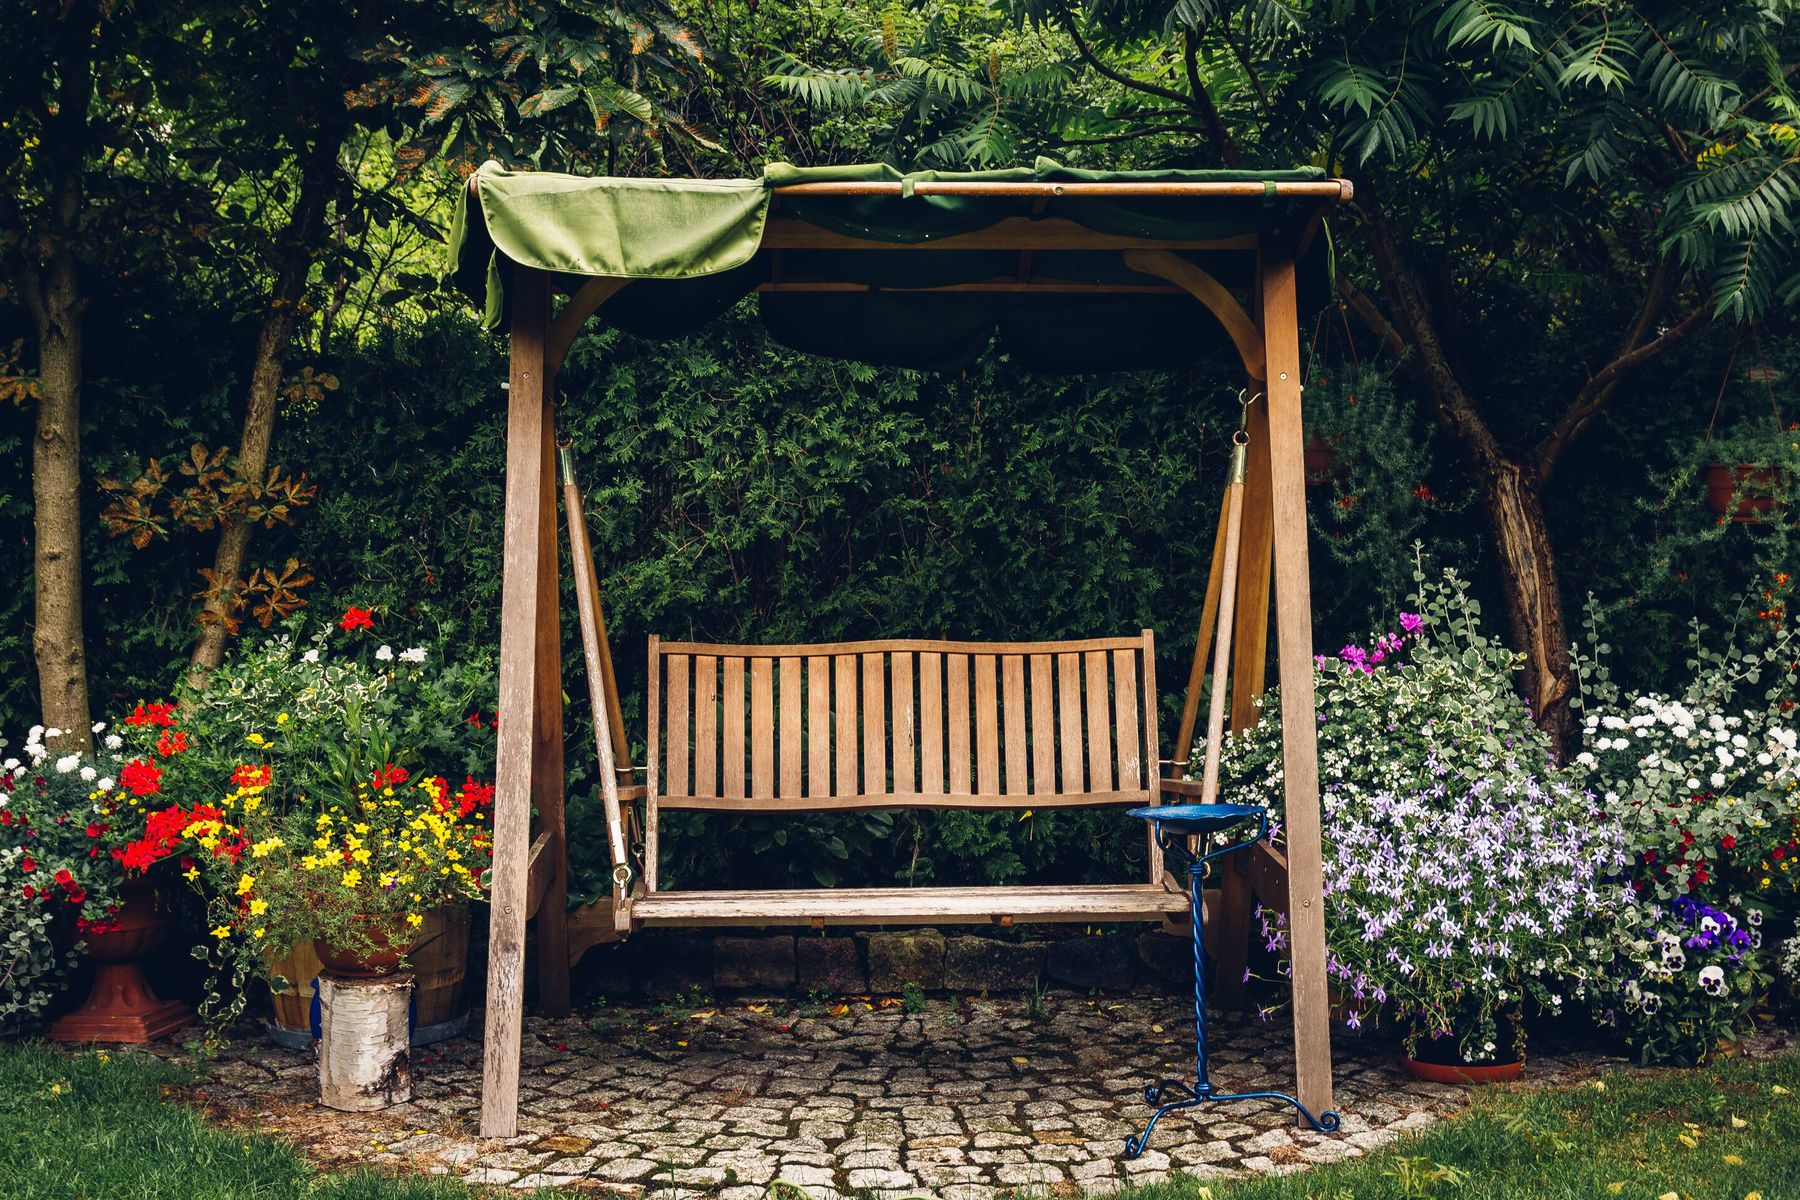 How to Clean Your Outdoor Wooden Swing